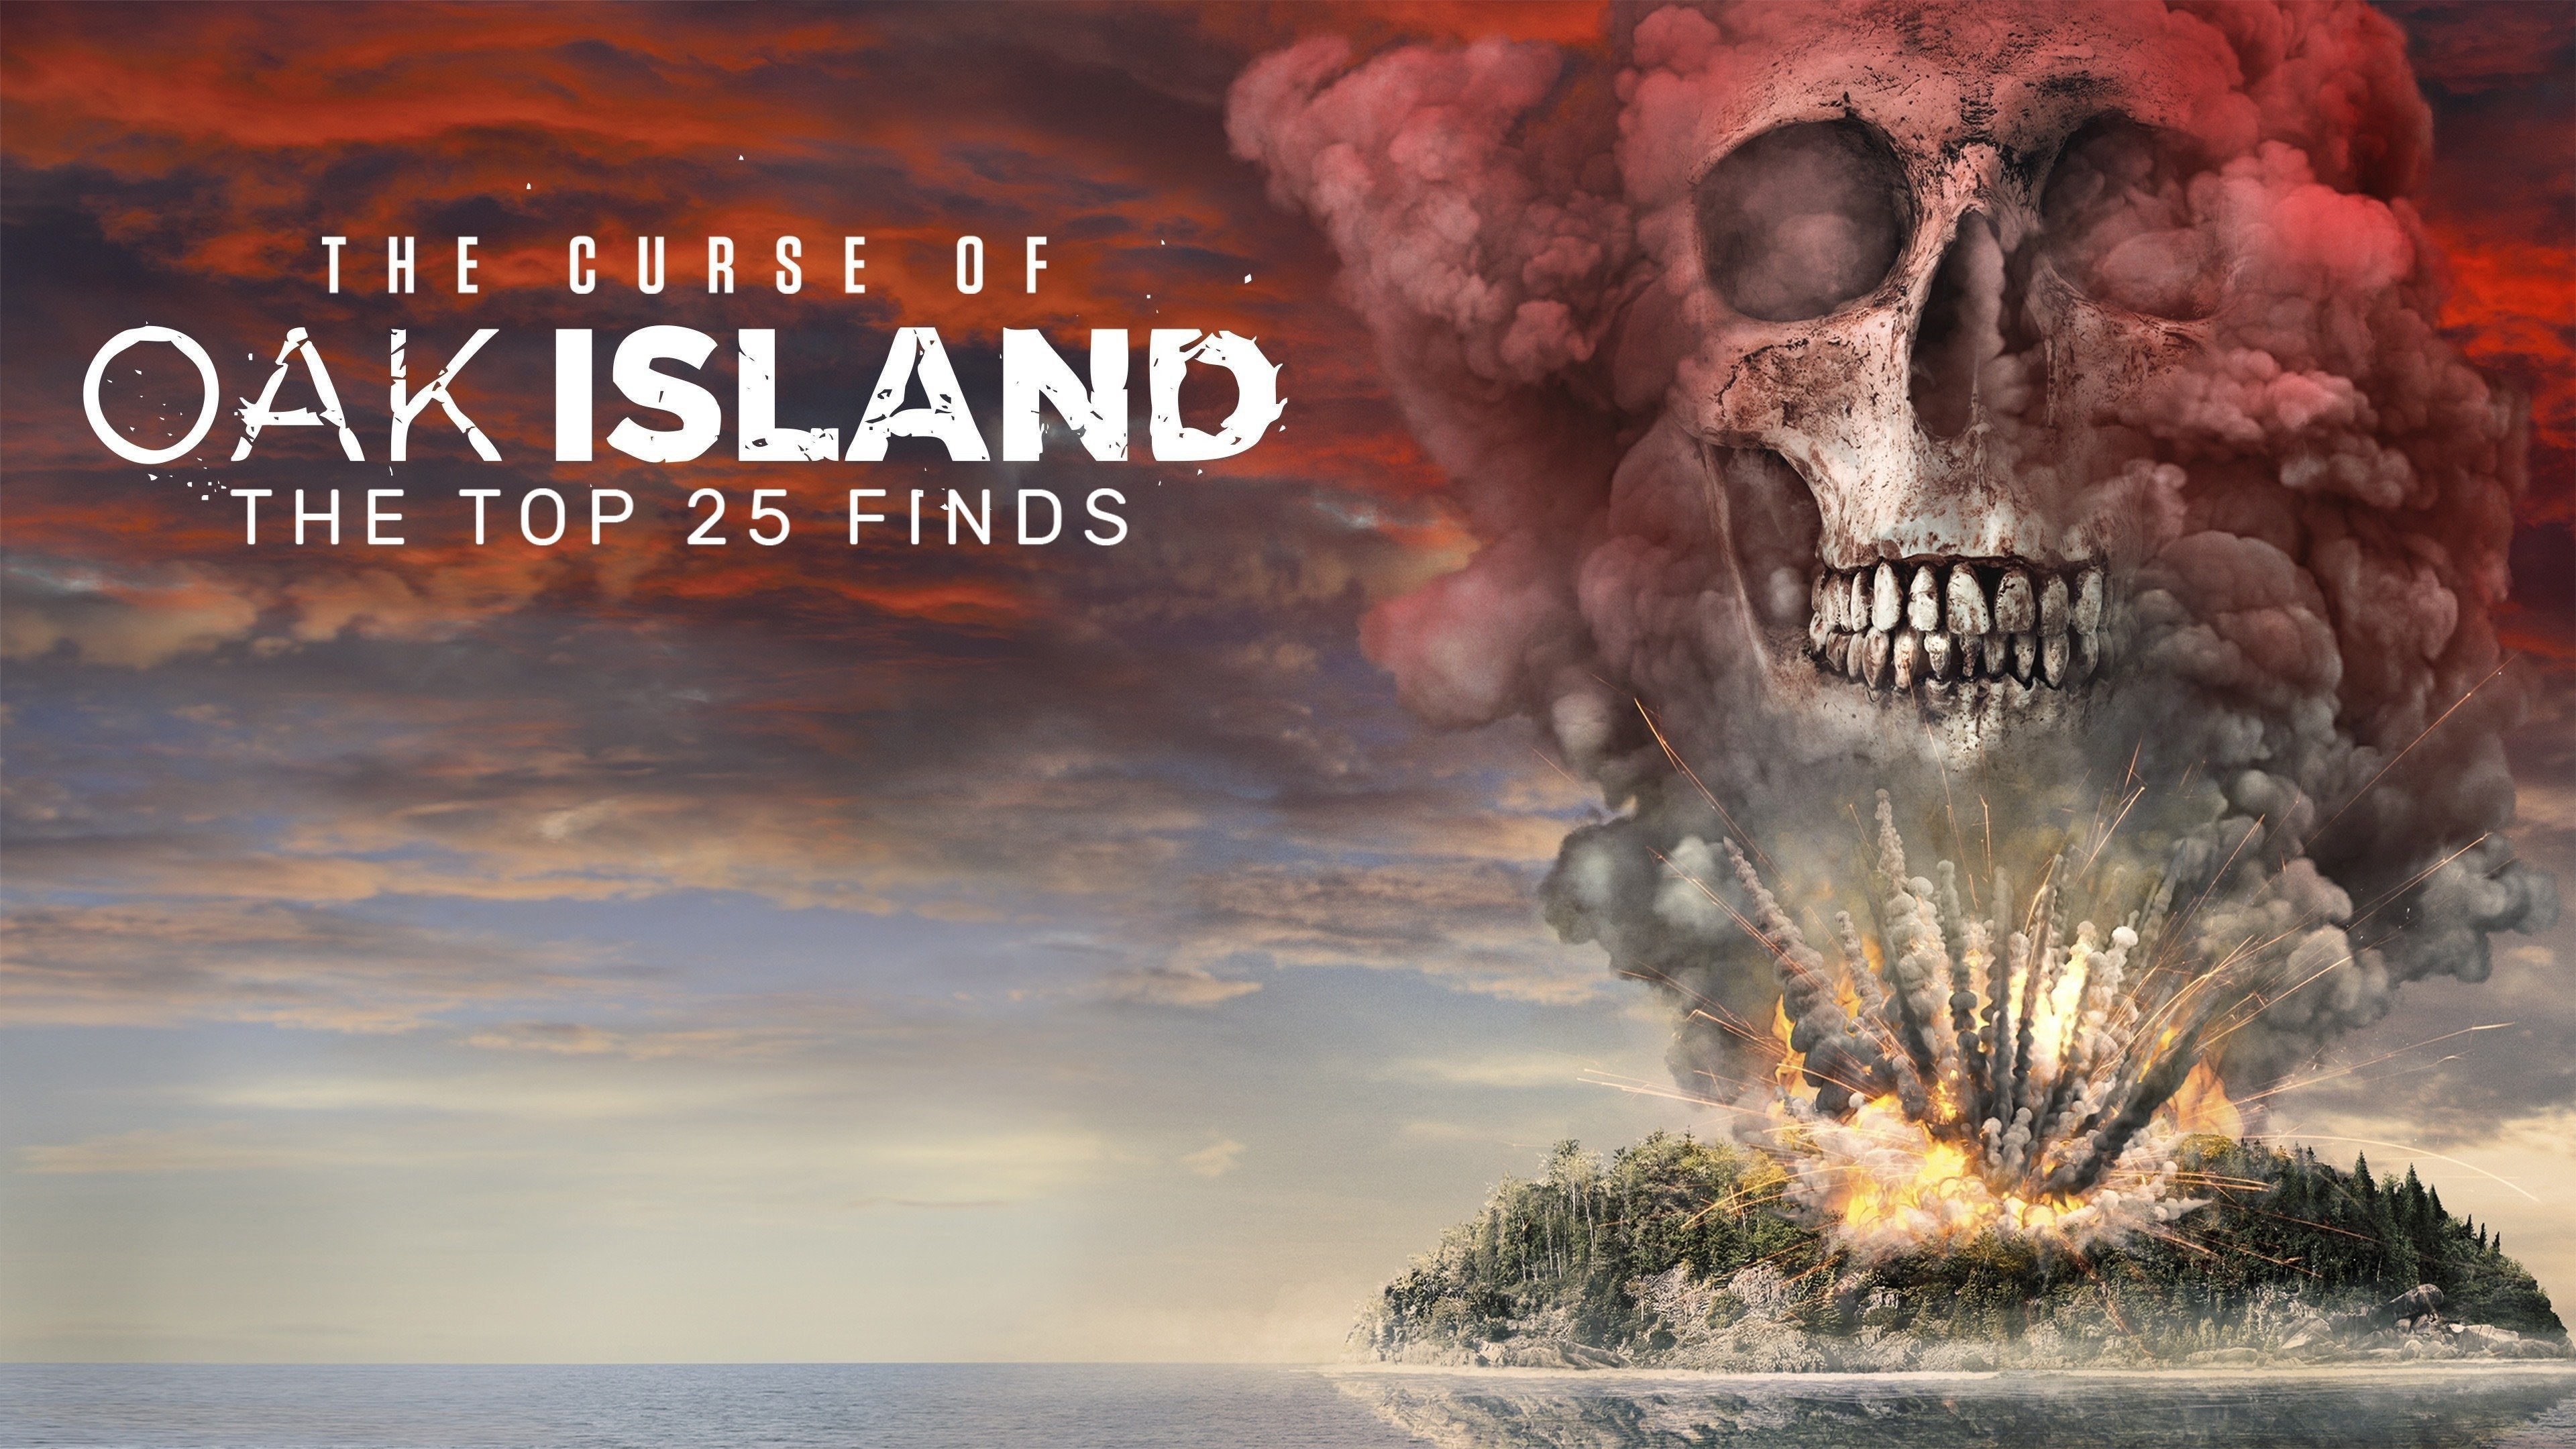 The Curse of Oak Island: The Top 25 Finds